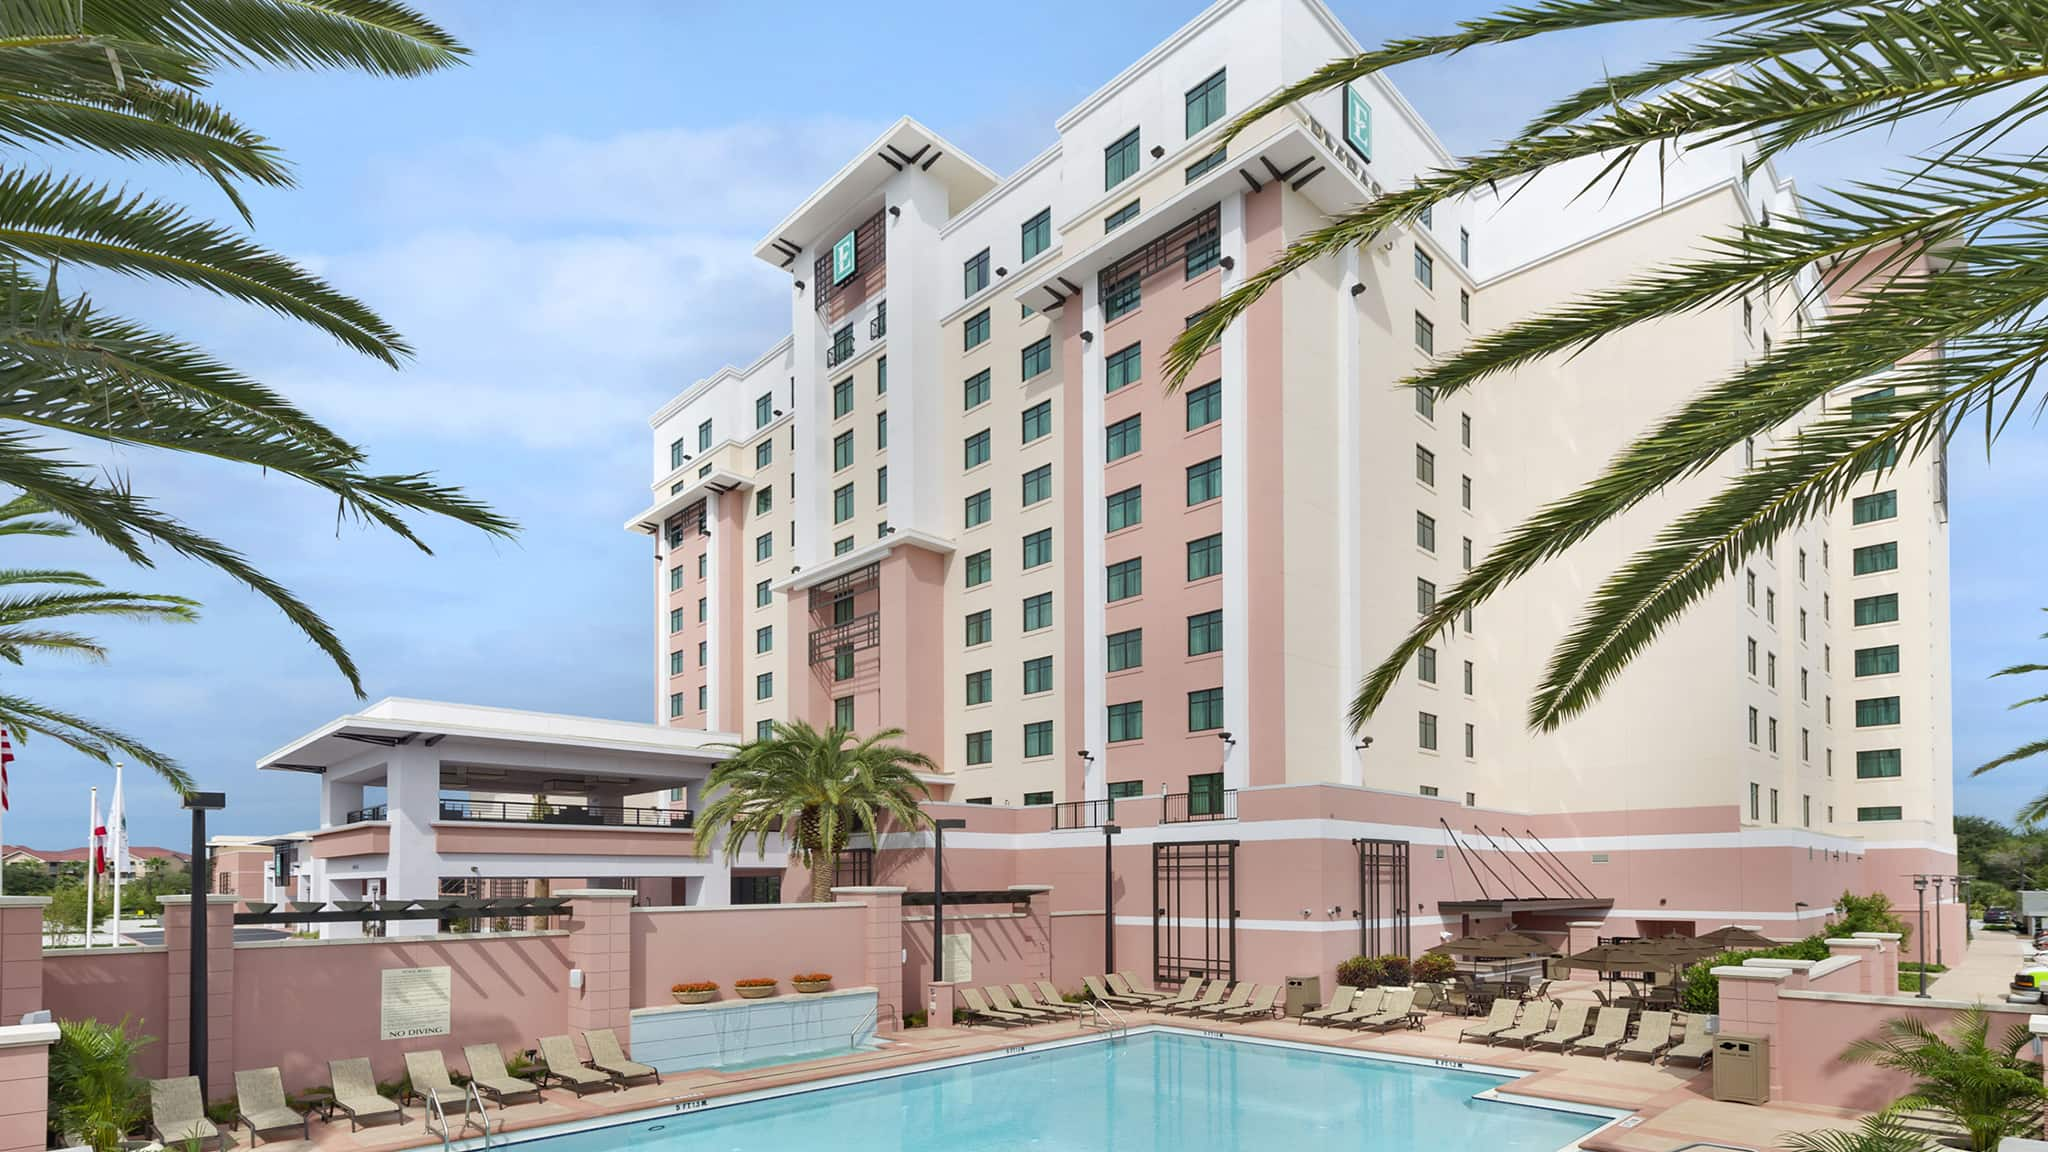 Suites South Buena Embassy Lake Vista Orlando — XZlOuPiwTk